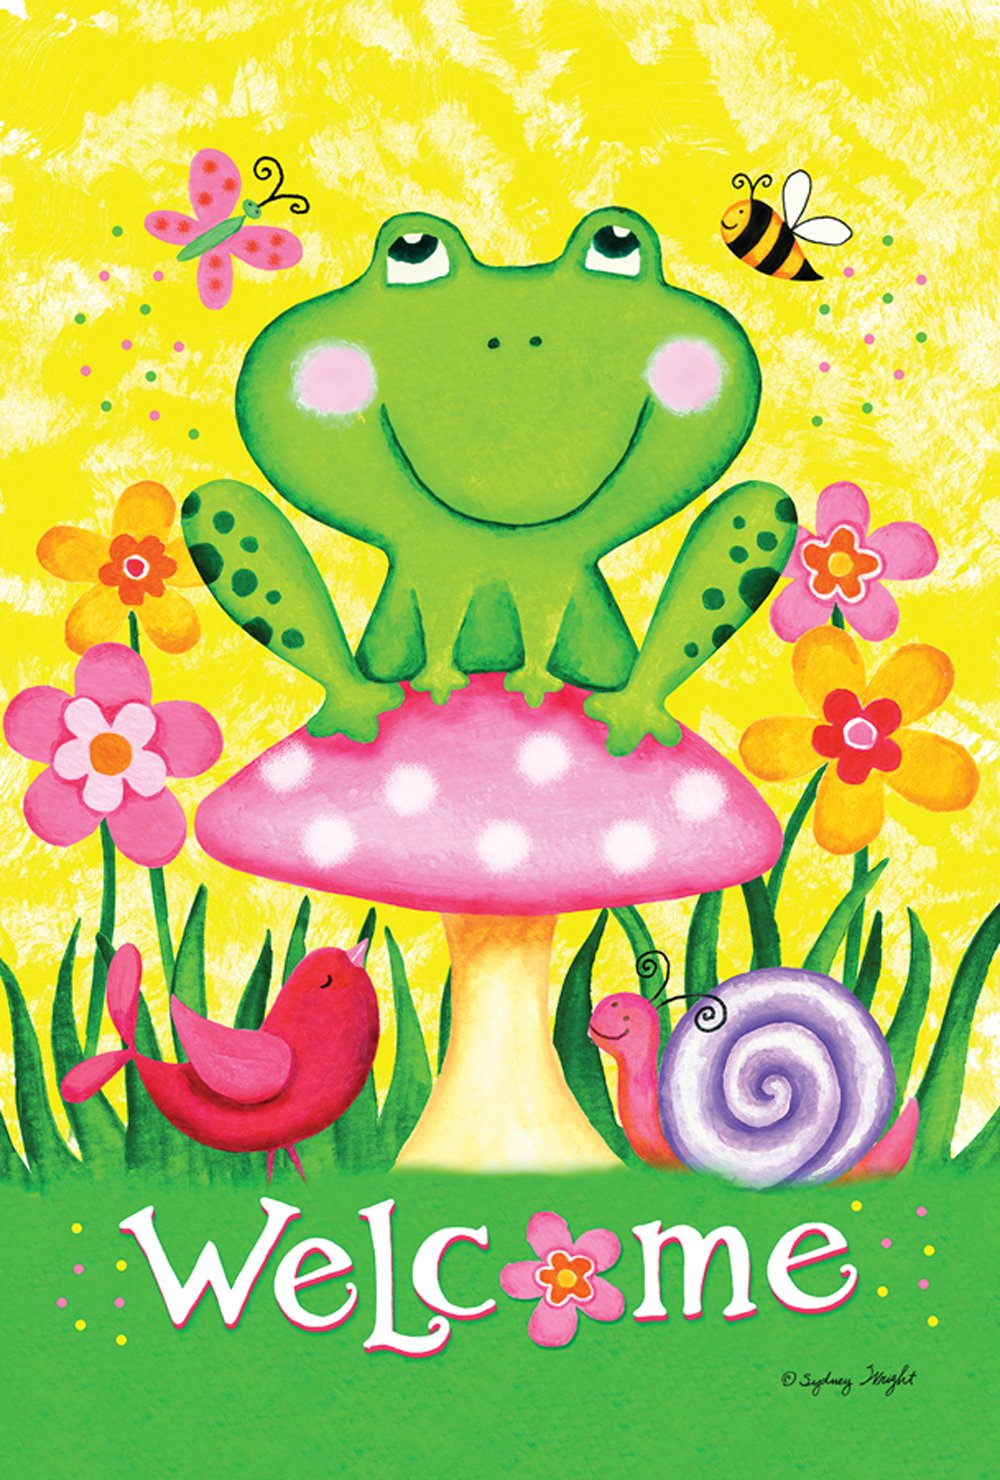 Toland Home Garden Welcome Froggie and Friends 12.5 x 18 Inch Decorative Colorful Spring Frog Flower Bird Garden Flag